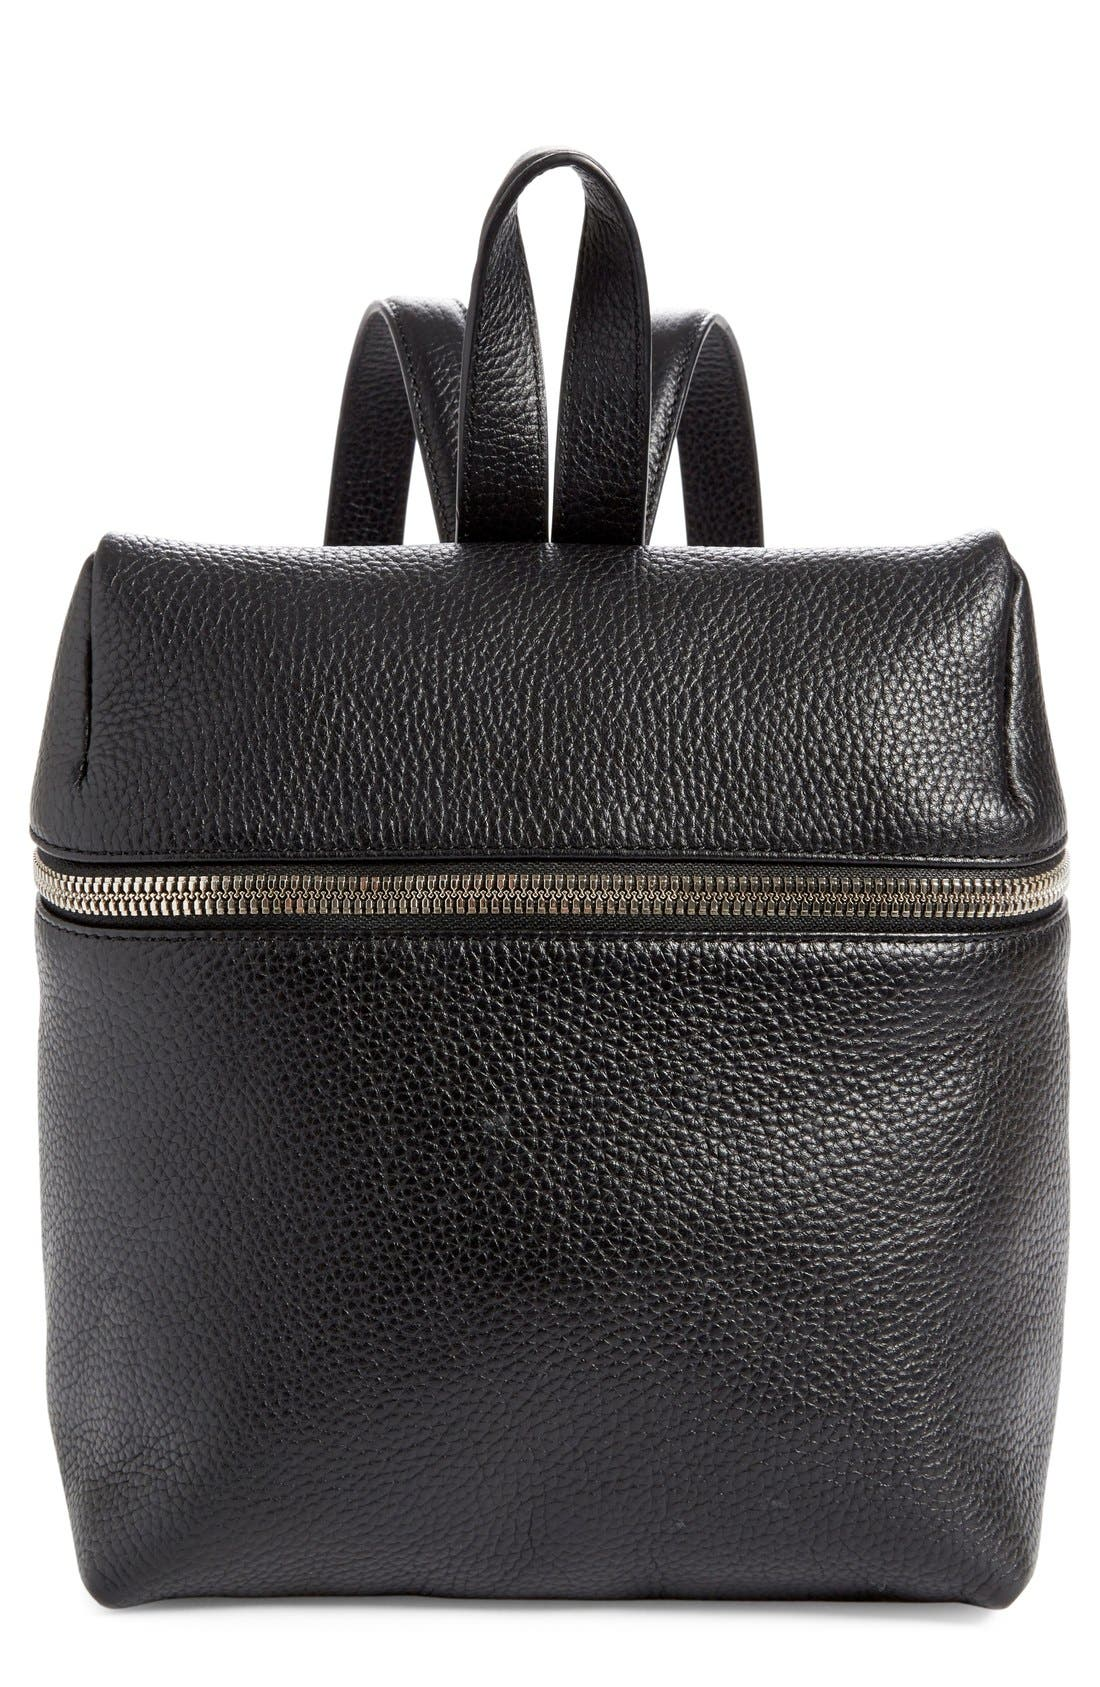 Small Pebbled Leather Backpack,                             Main thumbnail 1, color,                             BLACK